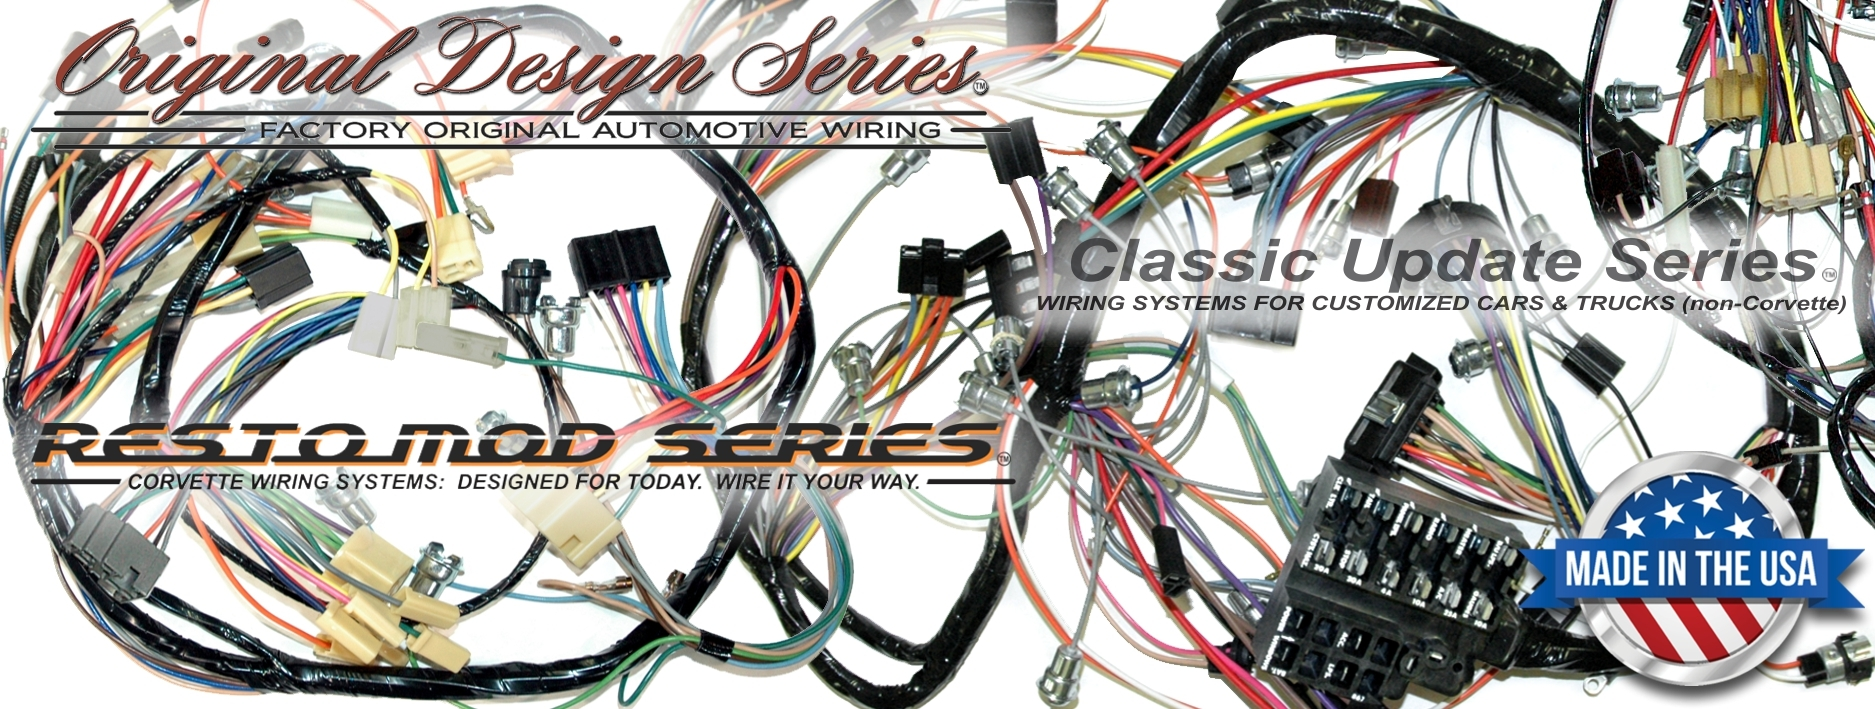 new header wiring_harnesses exact oem reproduction wiring harnesses and restomod wiring wiring harness for cars at eliteediting.co